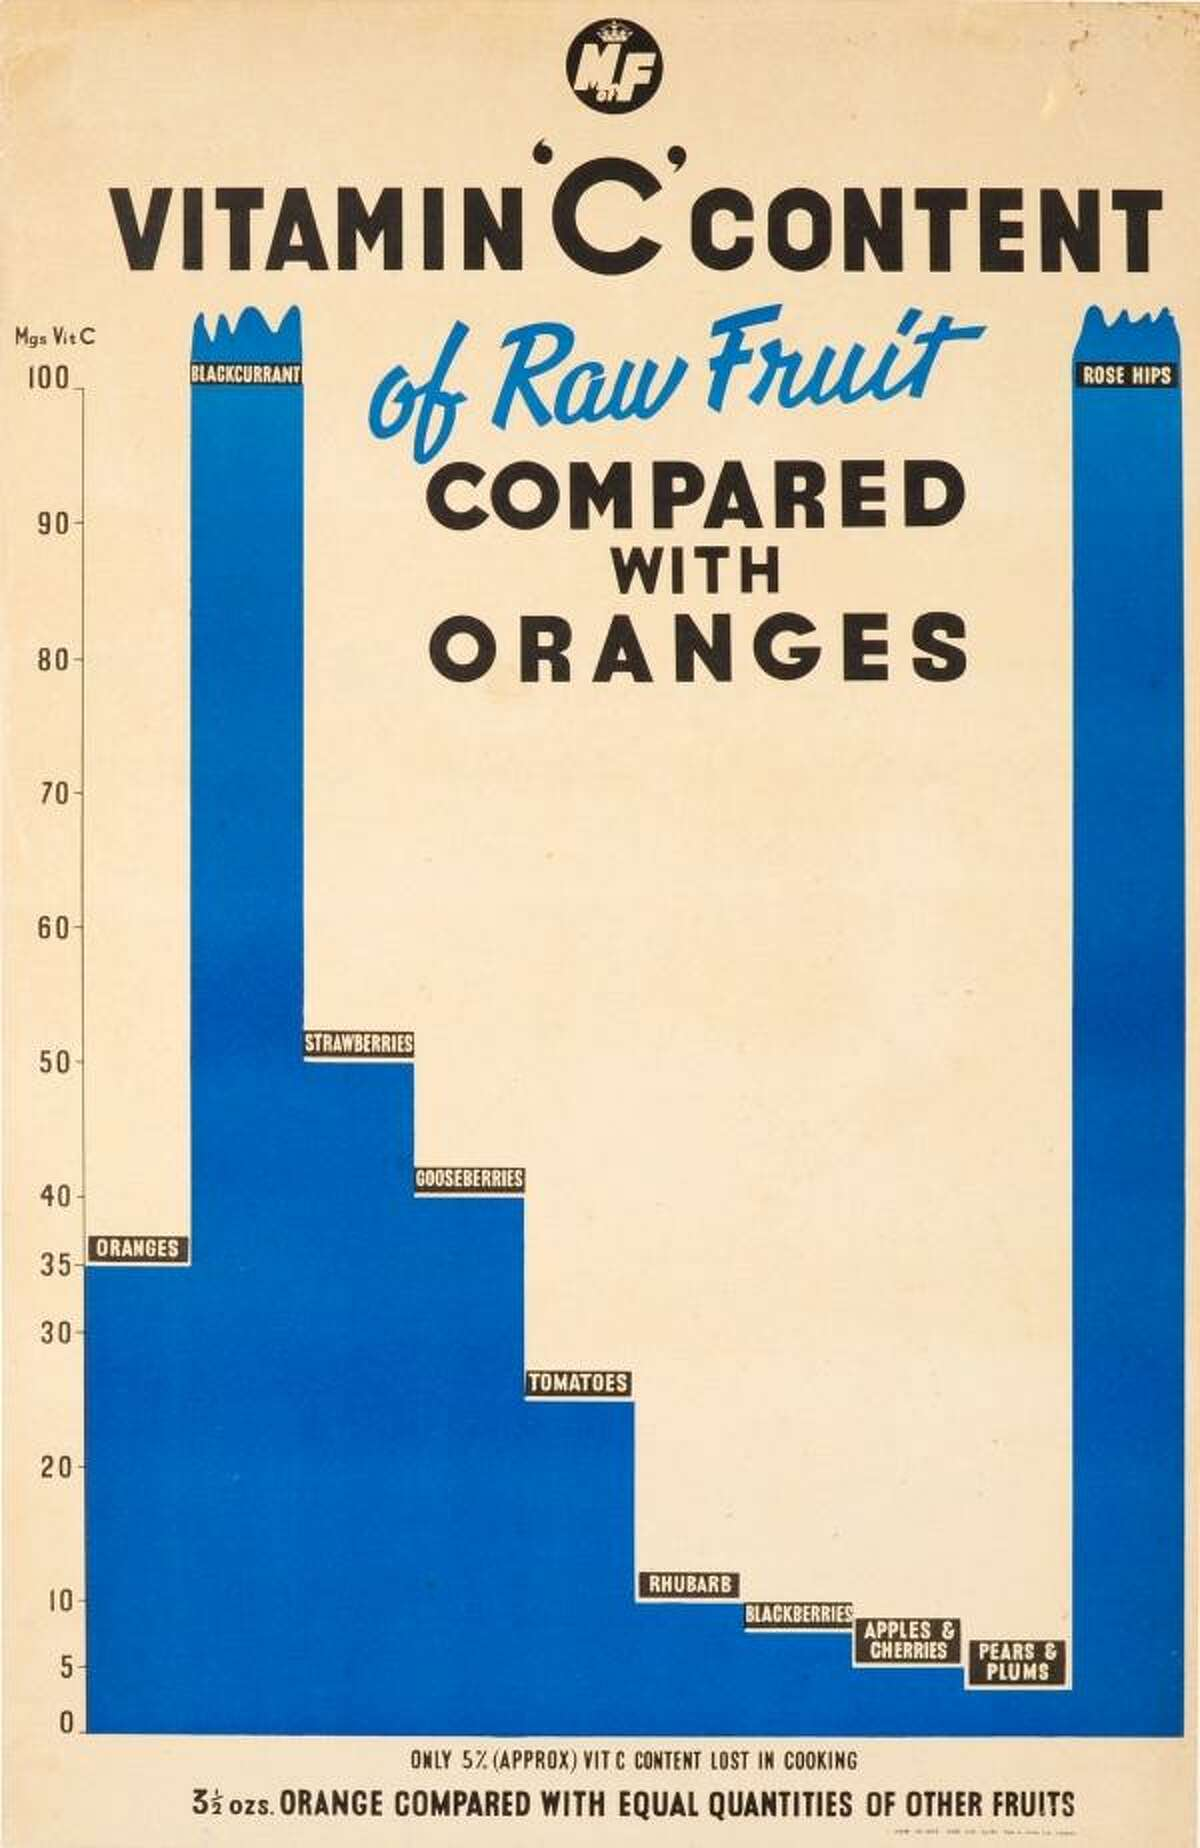 Vitamin C (1940, UK) With German u boats surrounding the British Isles, imports of foods such as oranges became scarce during WWII. This graph compares the Vitamin C content of various fruits. Homegrown fruits such as rose hips, strawberries, blackcurrants and gooseberries are listed as offering more Vitamin C than the hard-to-get oranges. Issued by the Ministry of Food.